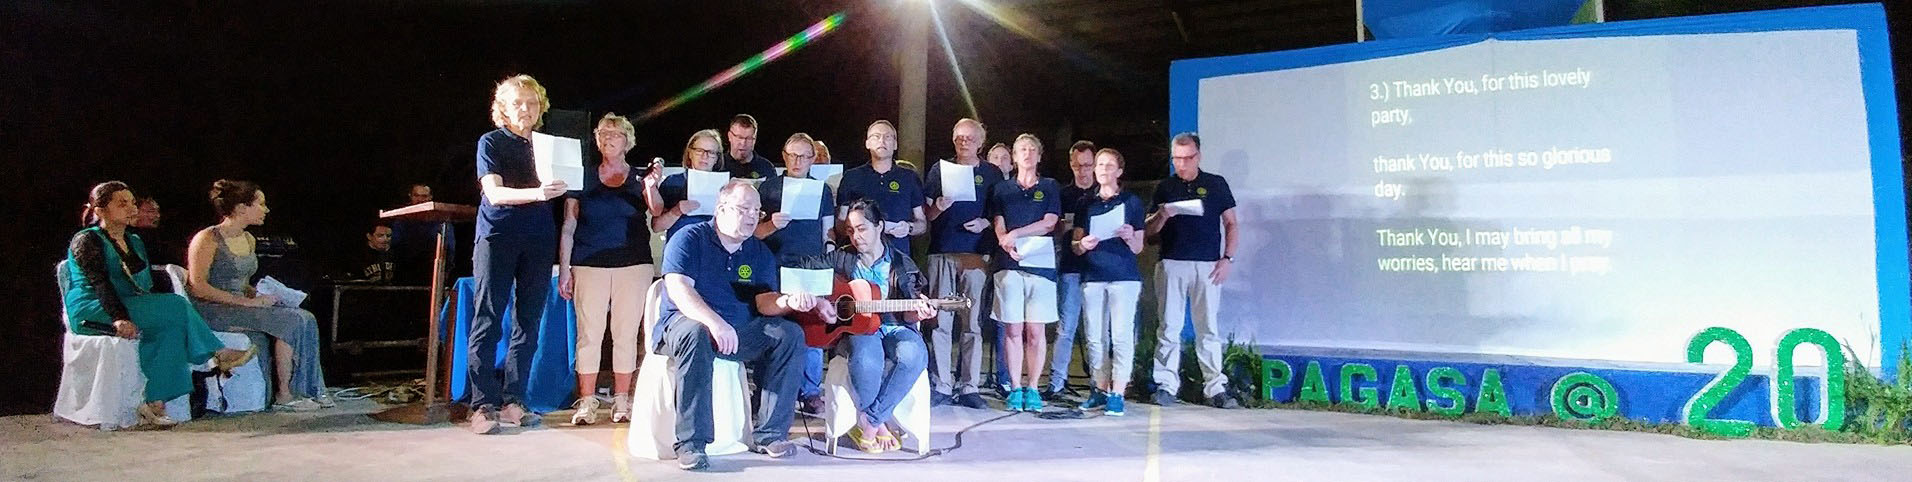 The Schenkels and friends from the Rotary Club Germany during Pag-asa's 20th Anniversary night